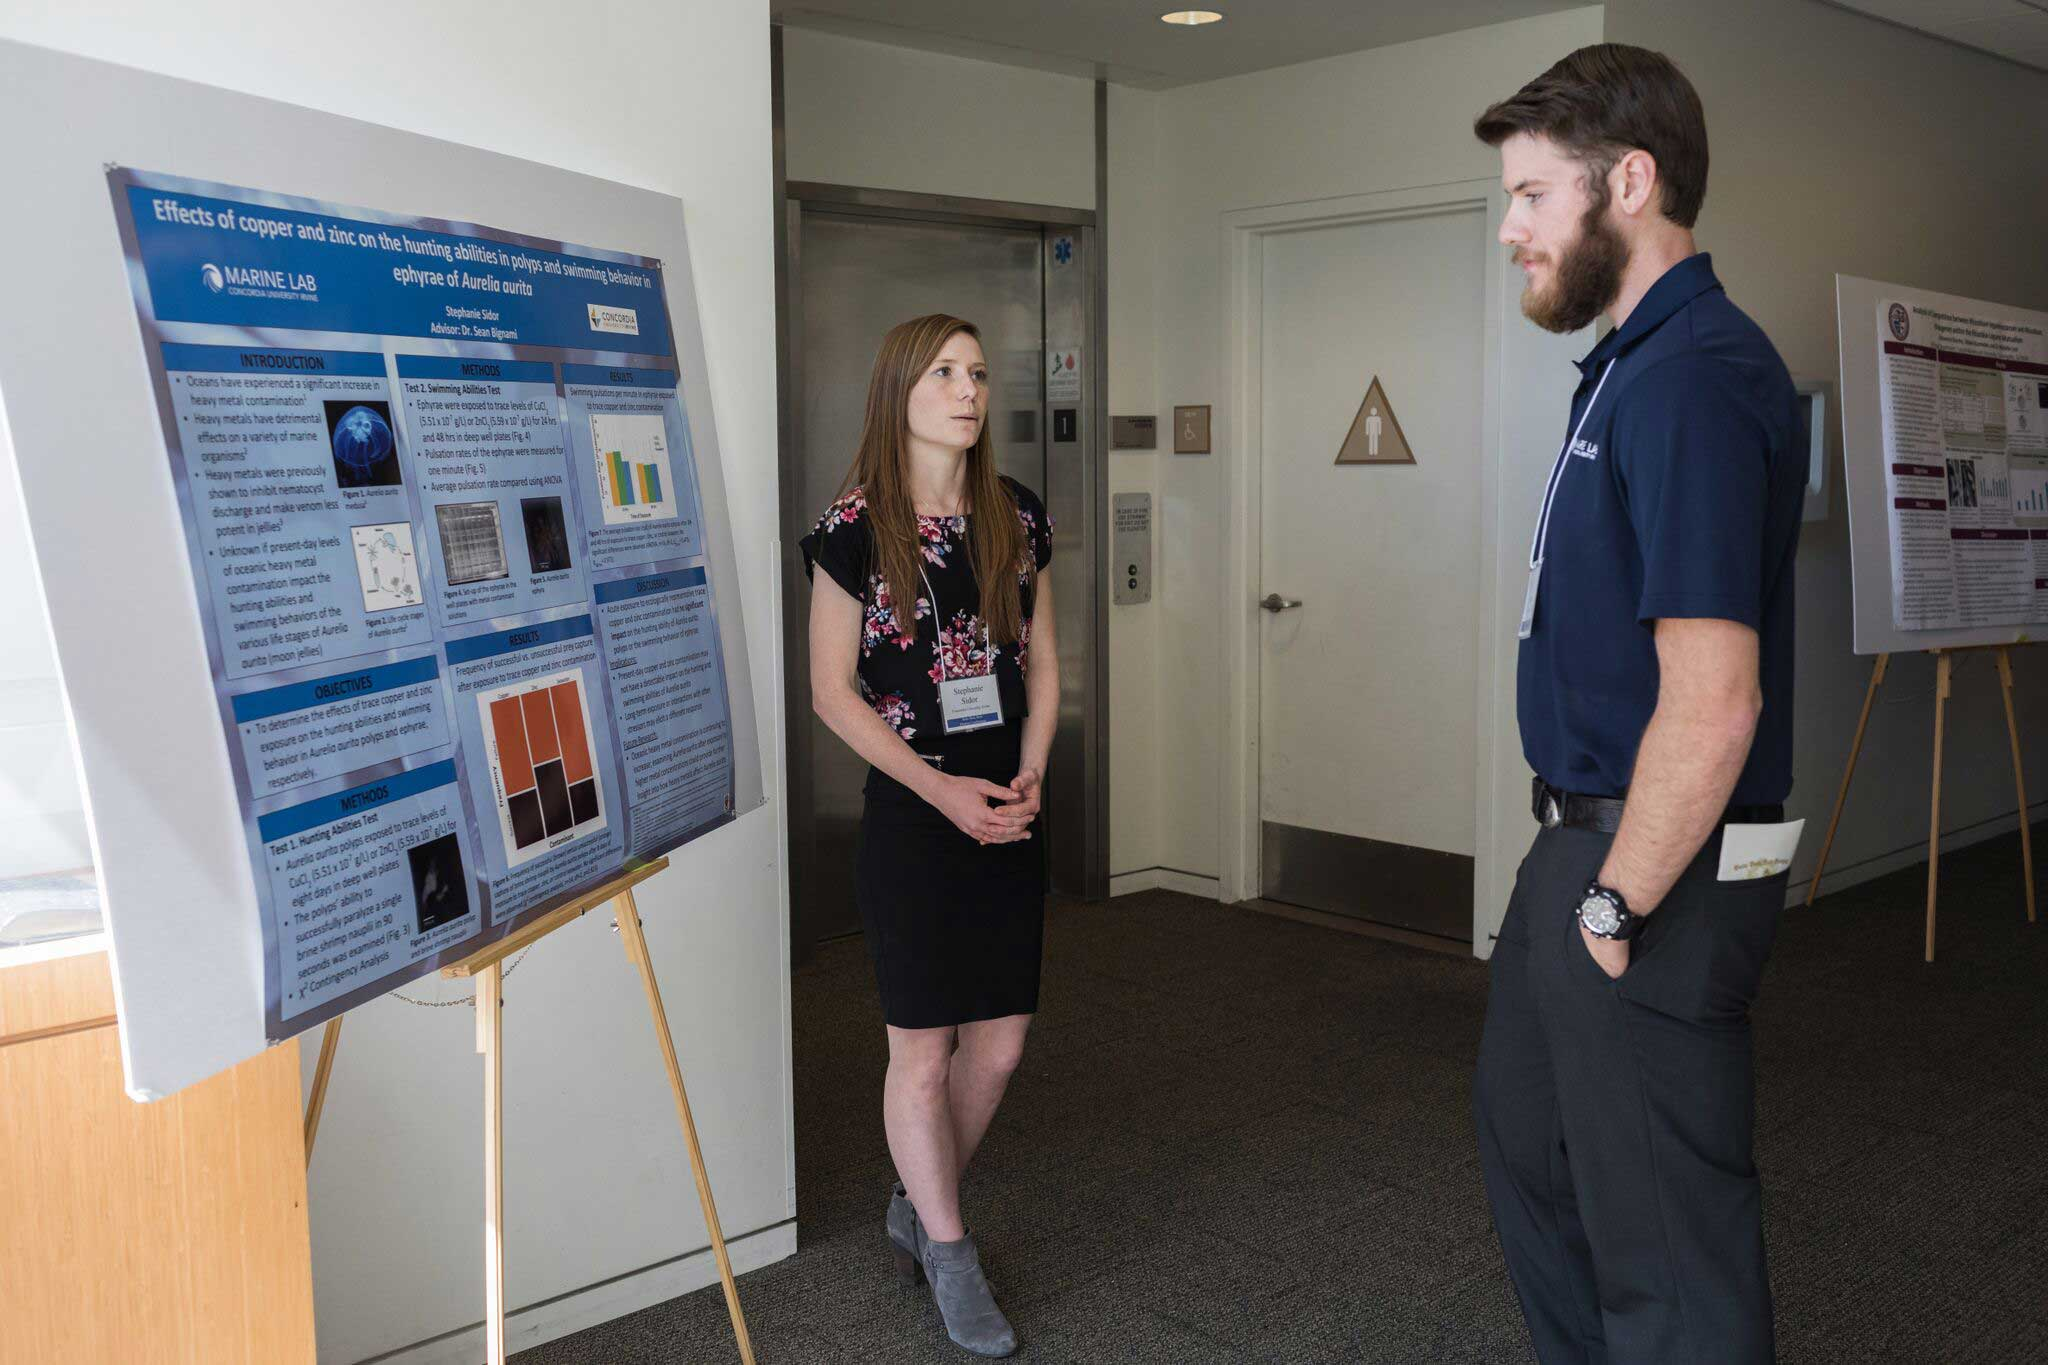 Noah Kolander viewing a female student's Marine Lab research poster